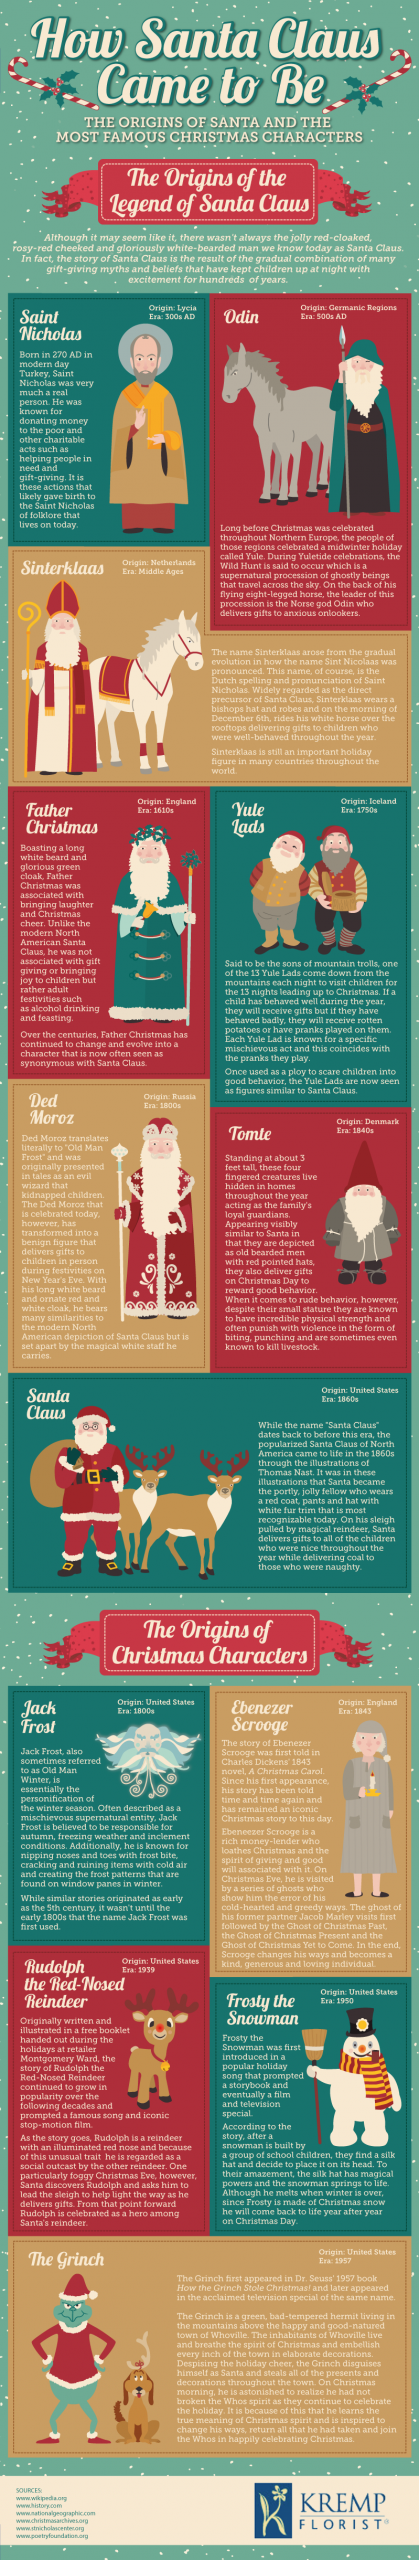 How Santa Came to Be